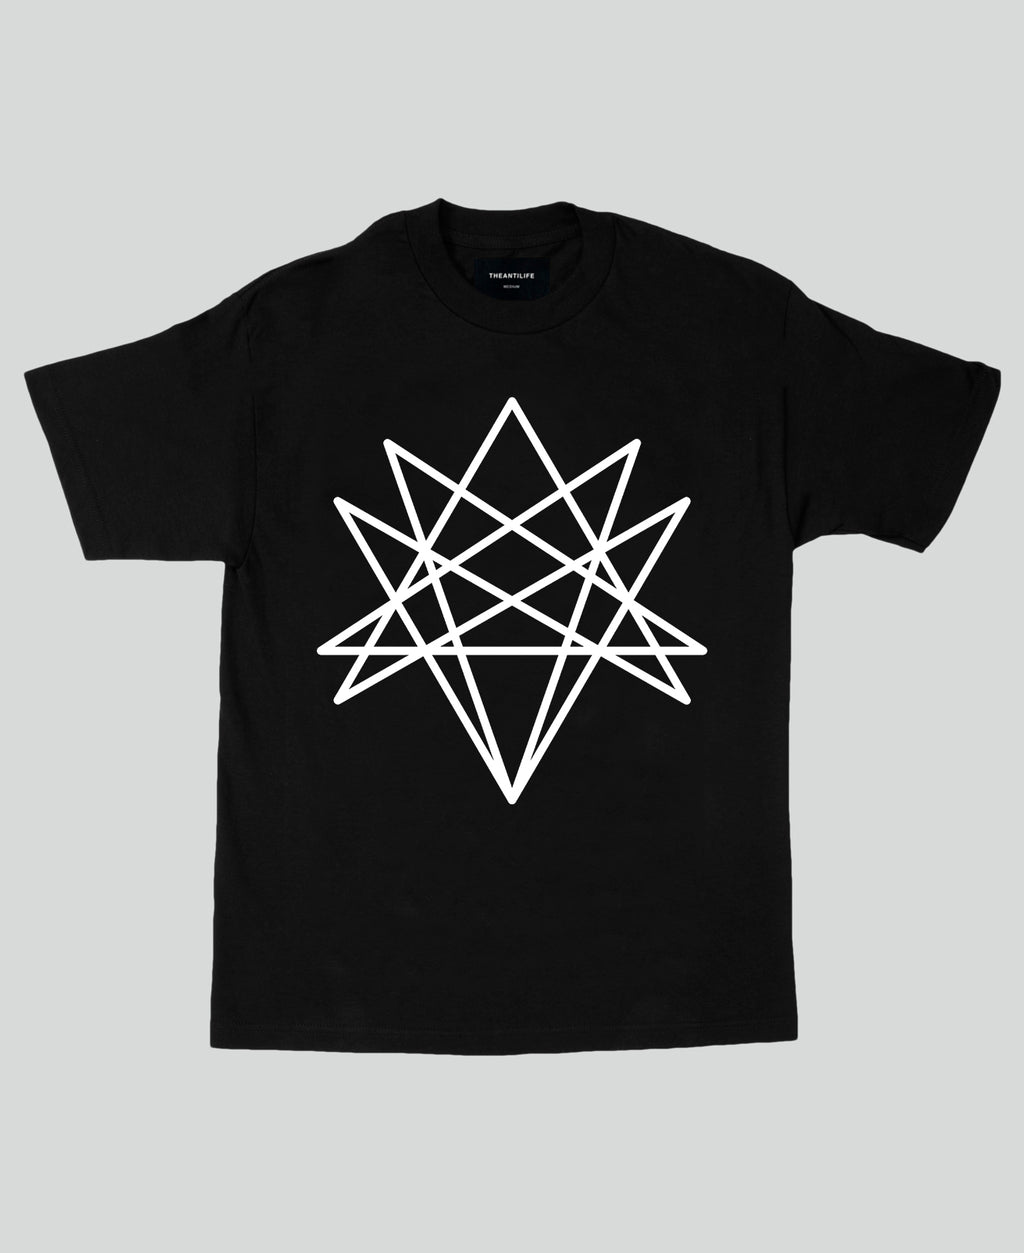 Antigram Tee - The Anti Life Ltd